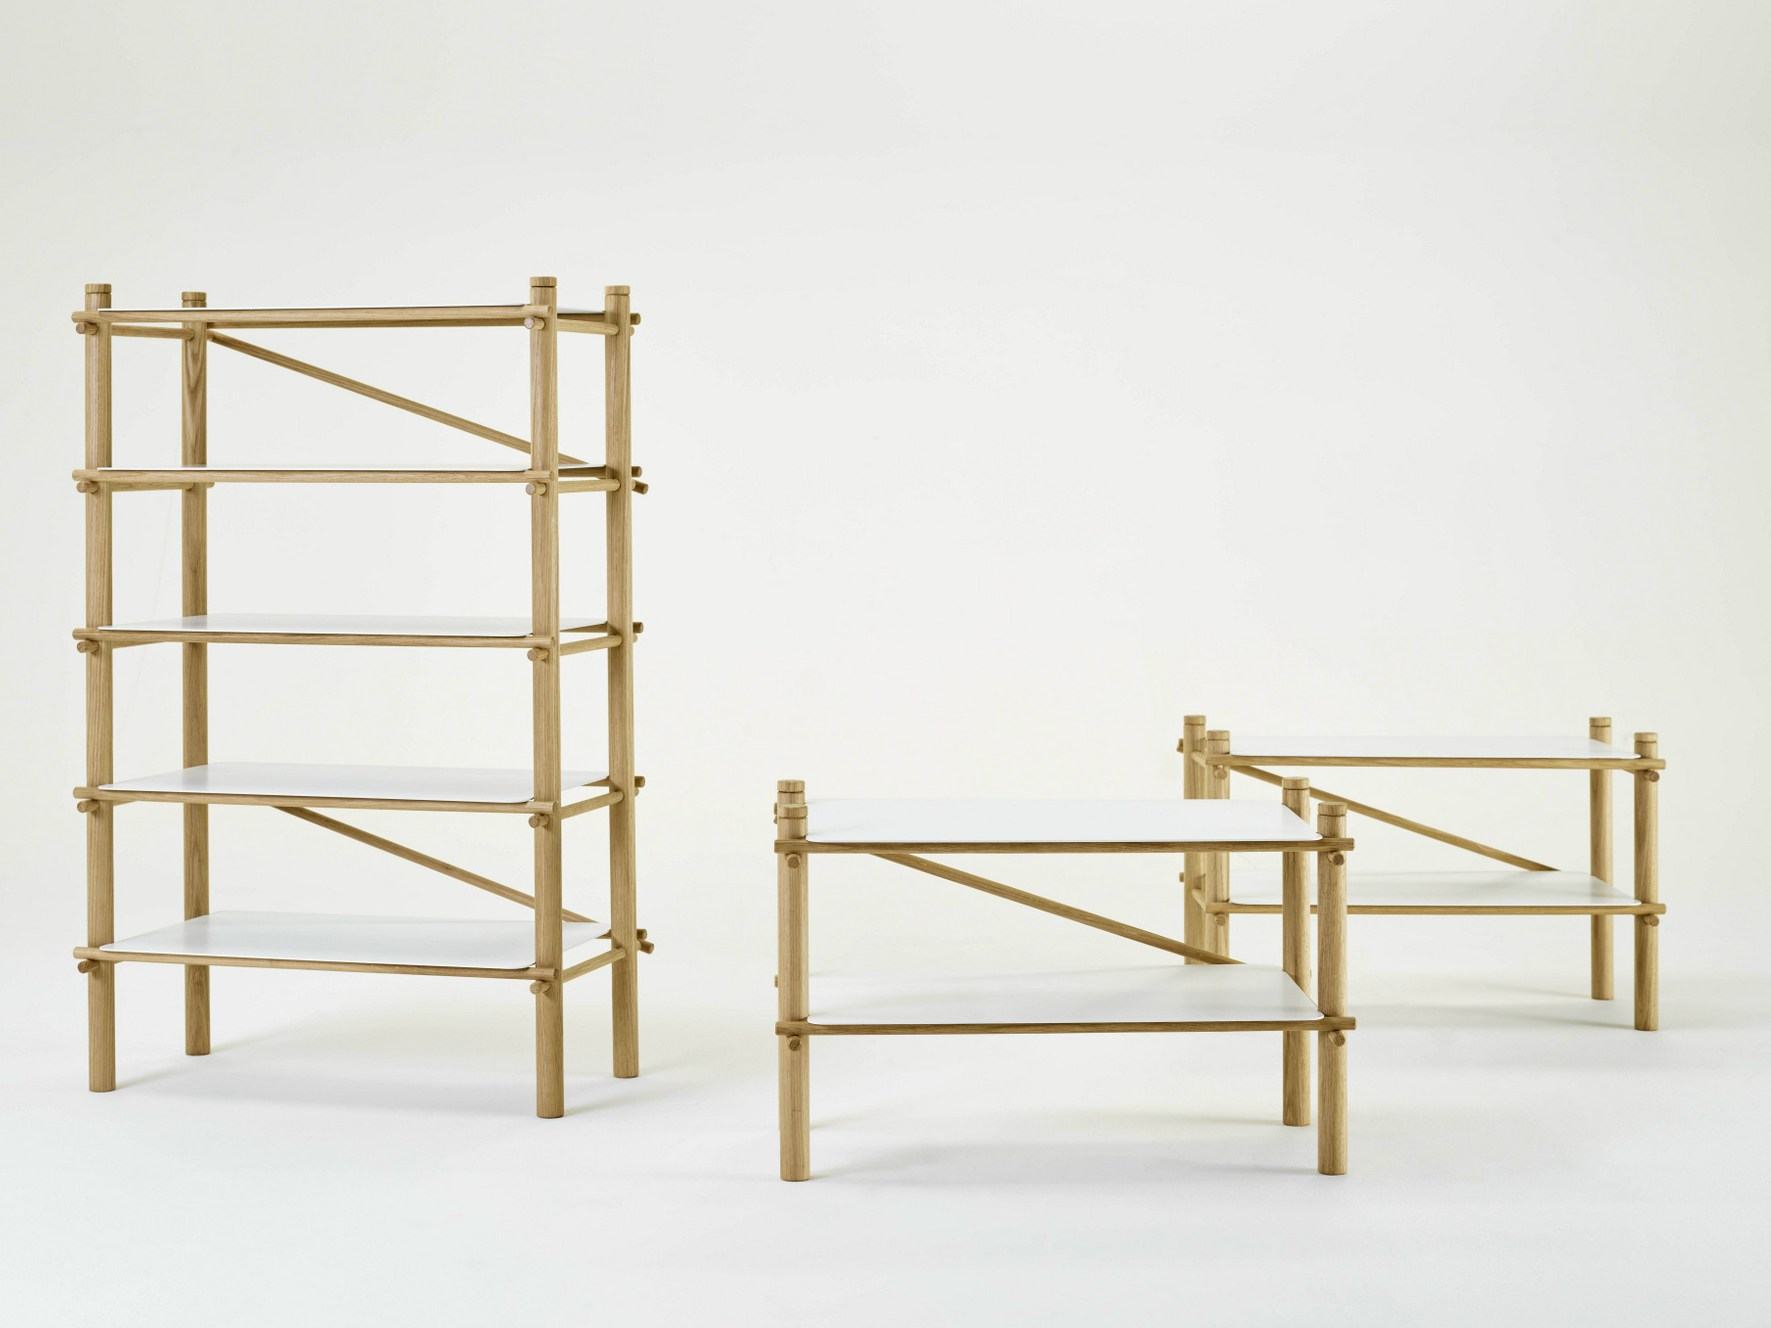 Andamio Shelf by Florian Gross & Kike Macías for EX.T